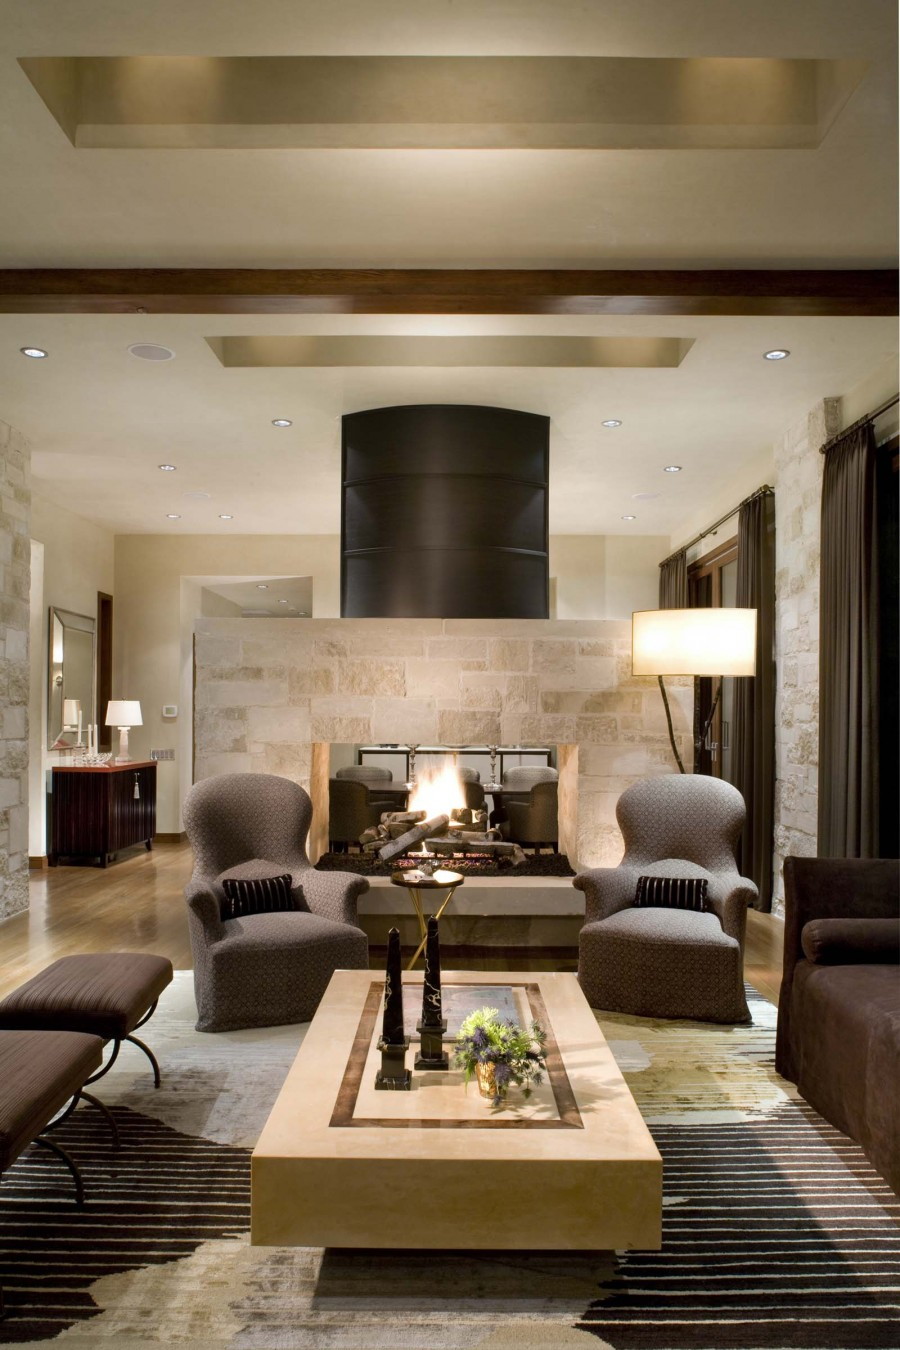 16 fabulous earth tones living room designs decoholic for Living room decor ideas